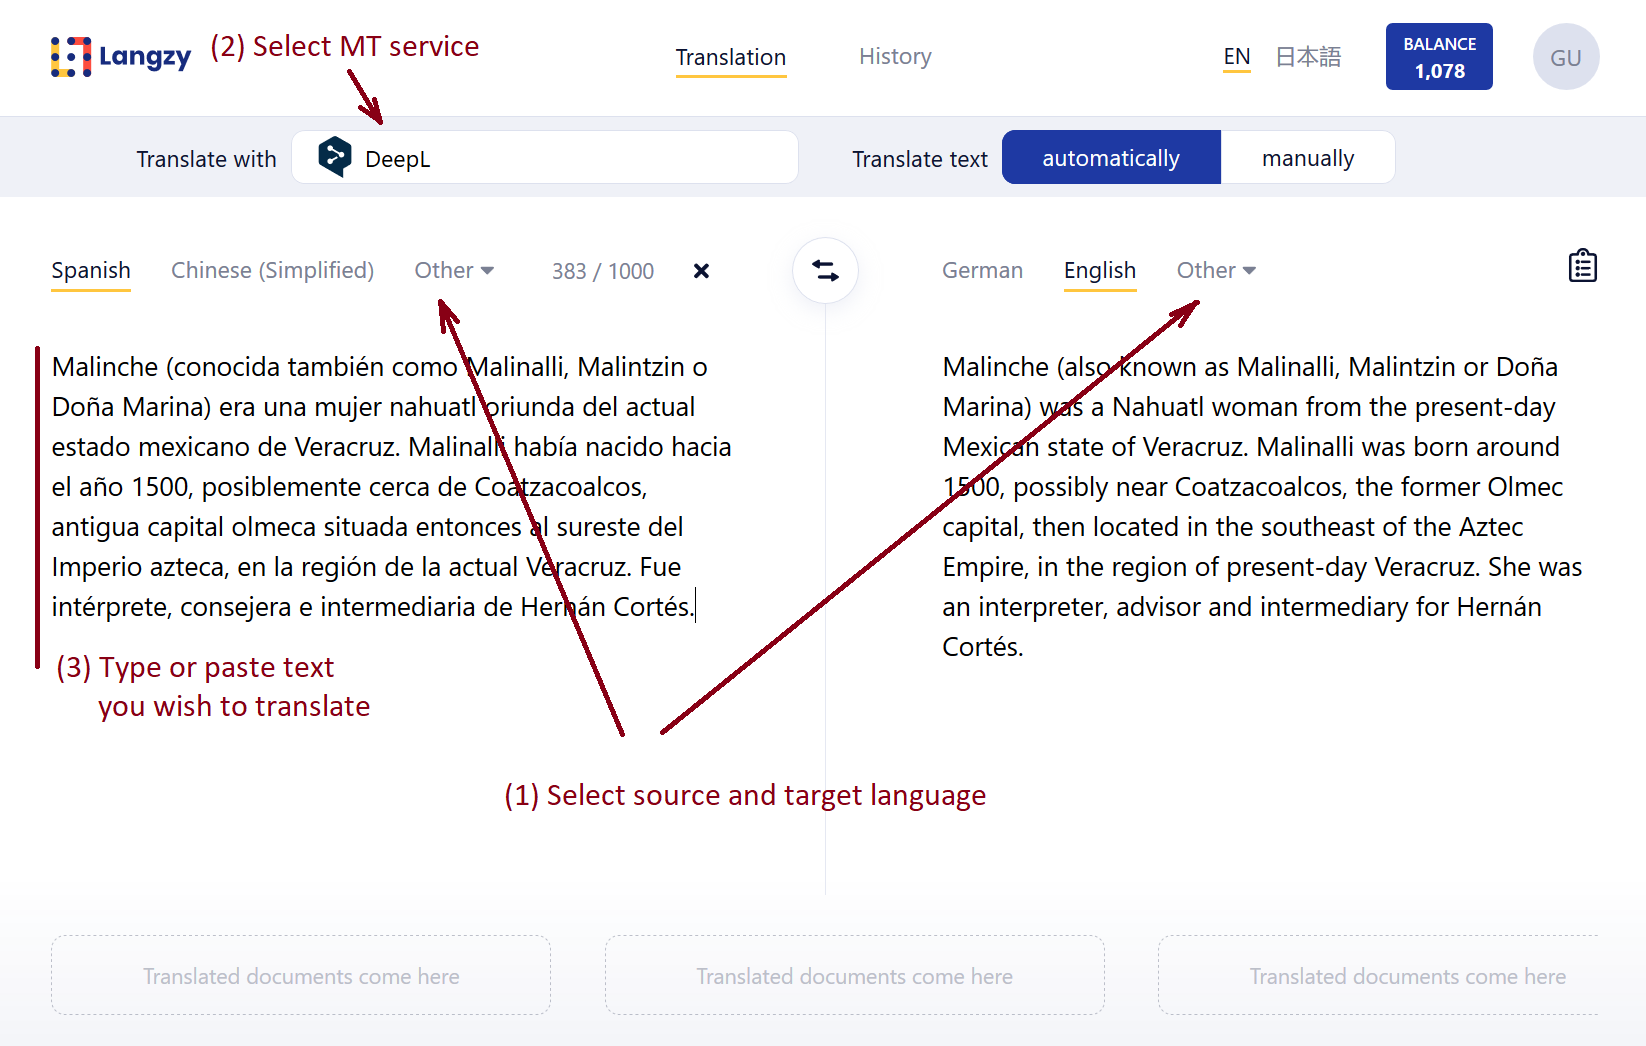 How you can translate with Langzy in three easy steps